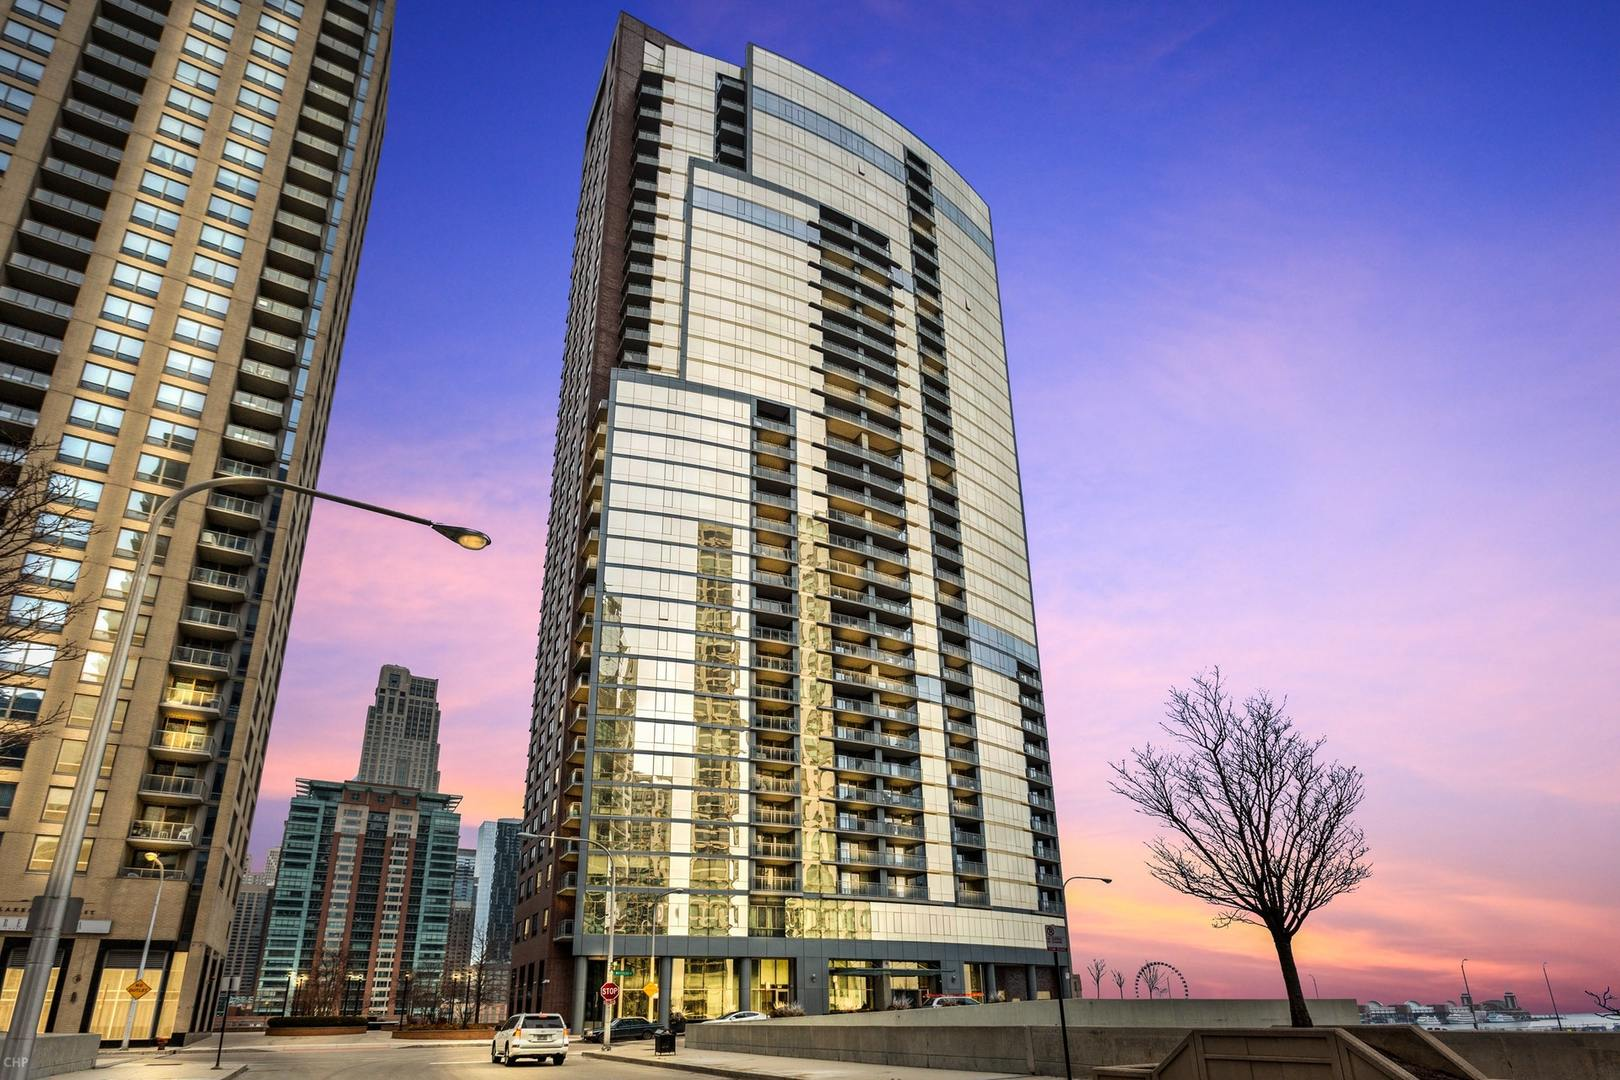 450 EAST WATERSIDE DRIVE #3009, CHICAGO, IL 60601